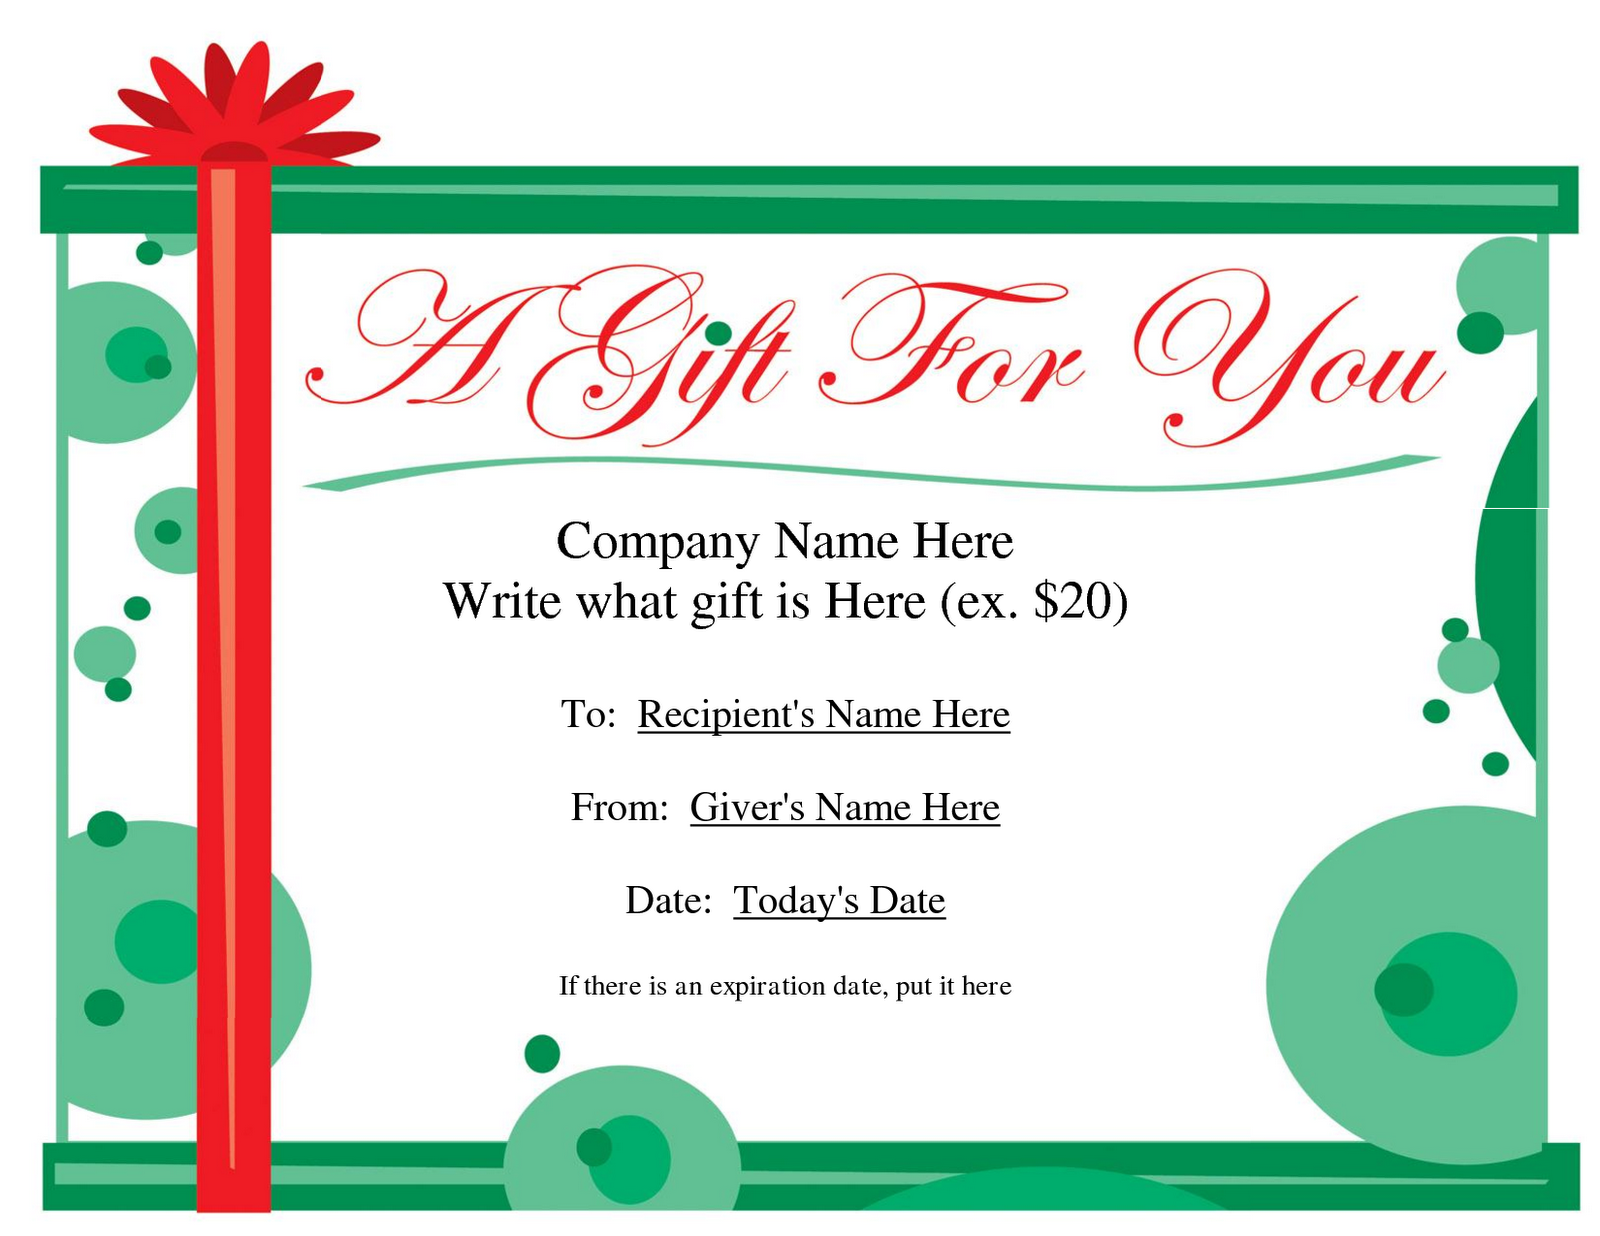 Printable gift certificates clipart clipart suggest for Downloadable gift certificate templates